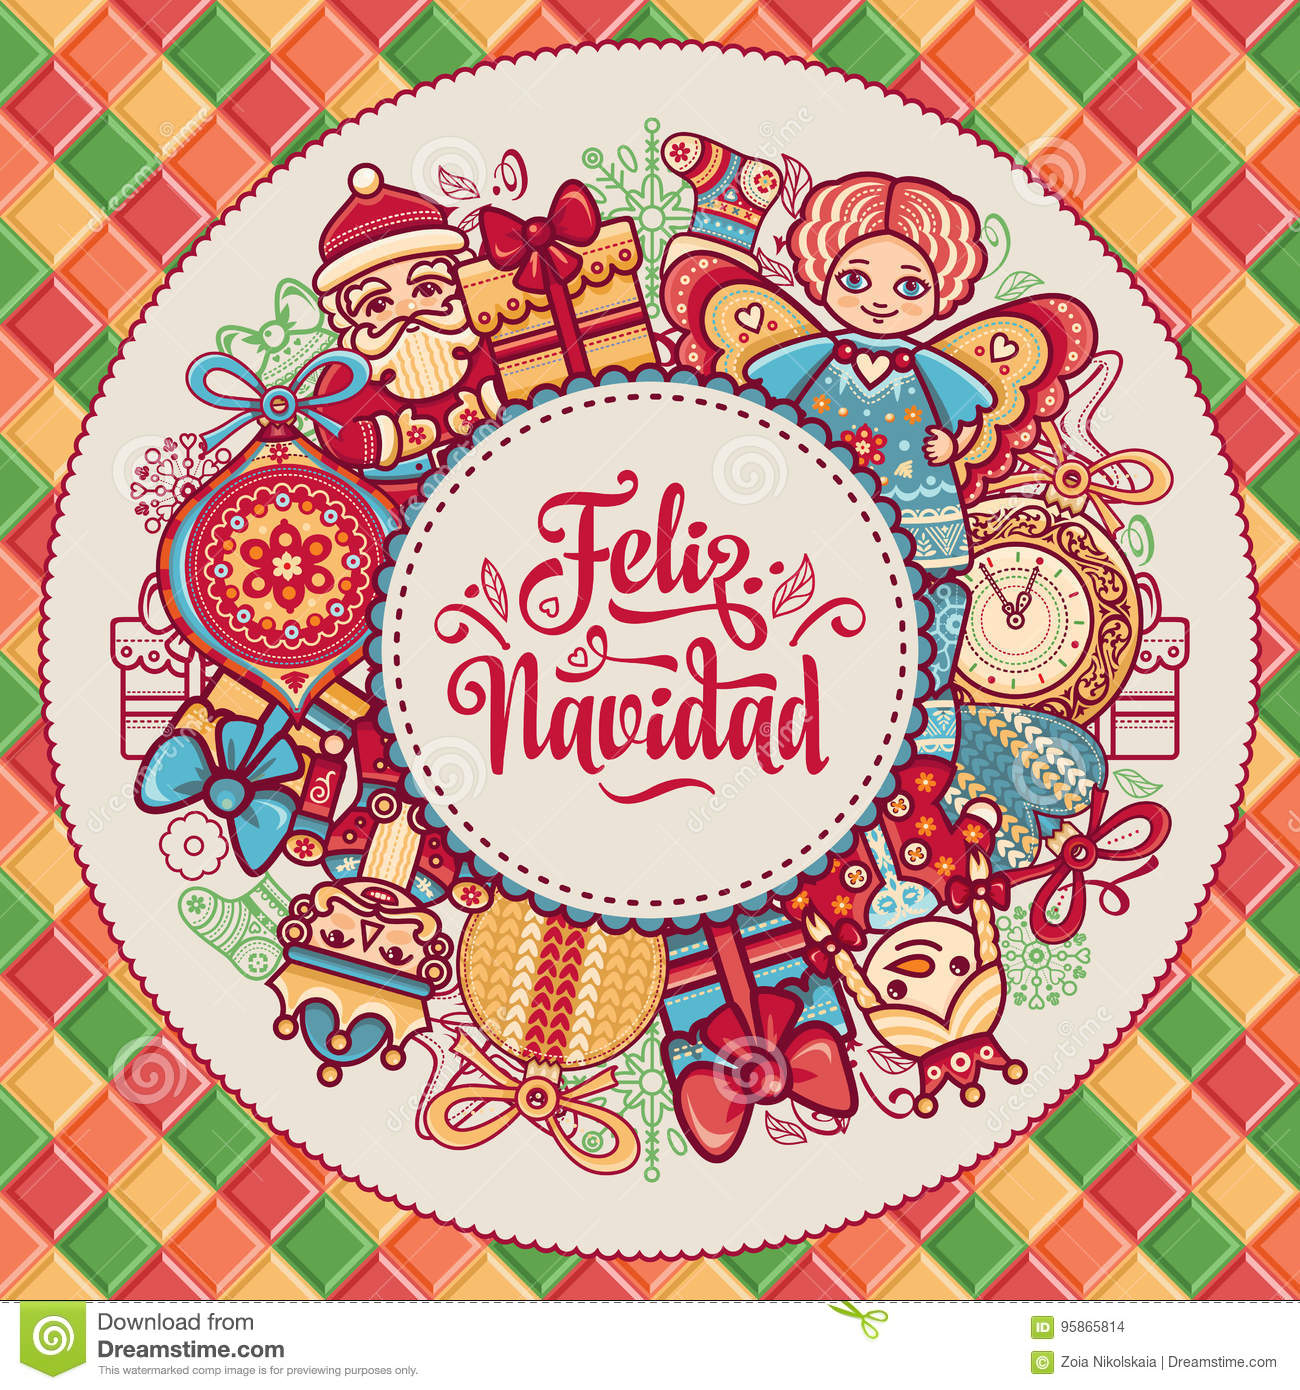 christmas decorations for invitations and greeting cards winter toy feliz navidad xmas card on spanish language warm wishes for happy holidays in spain